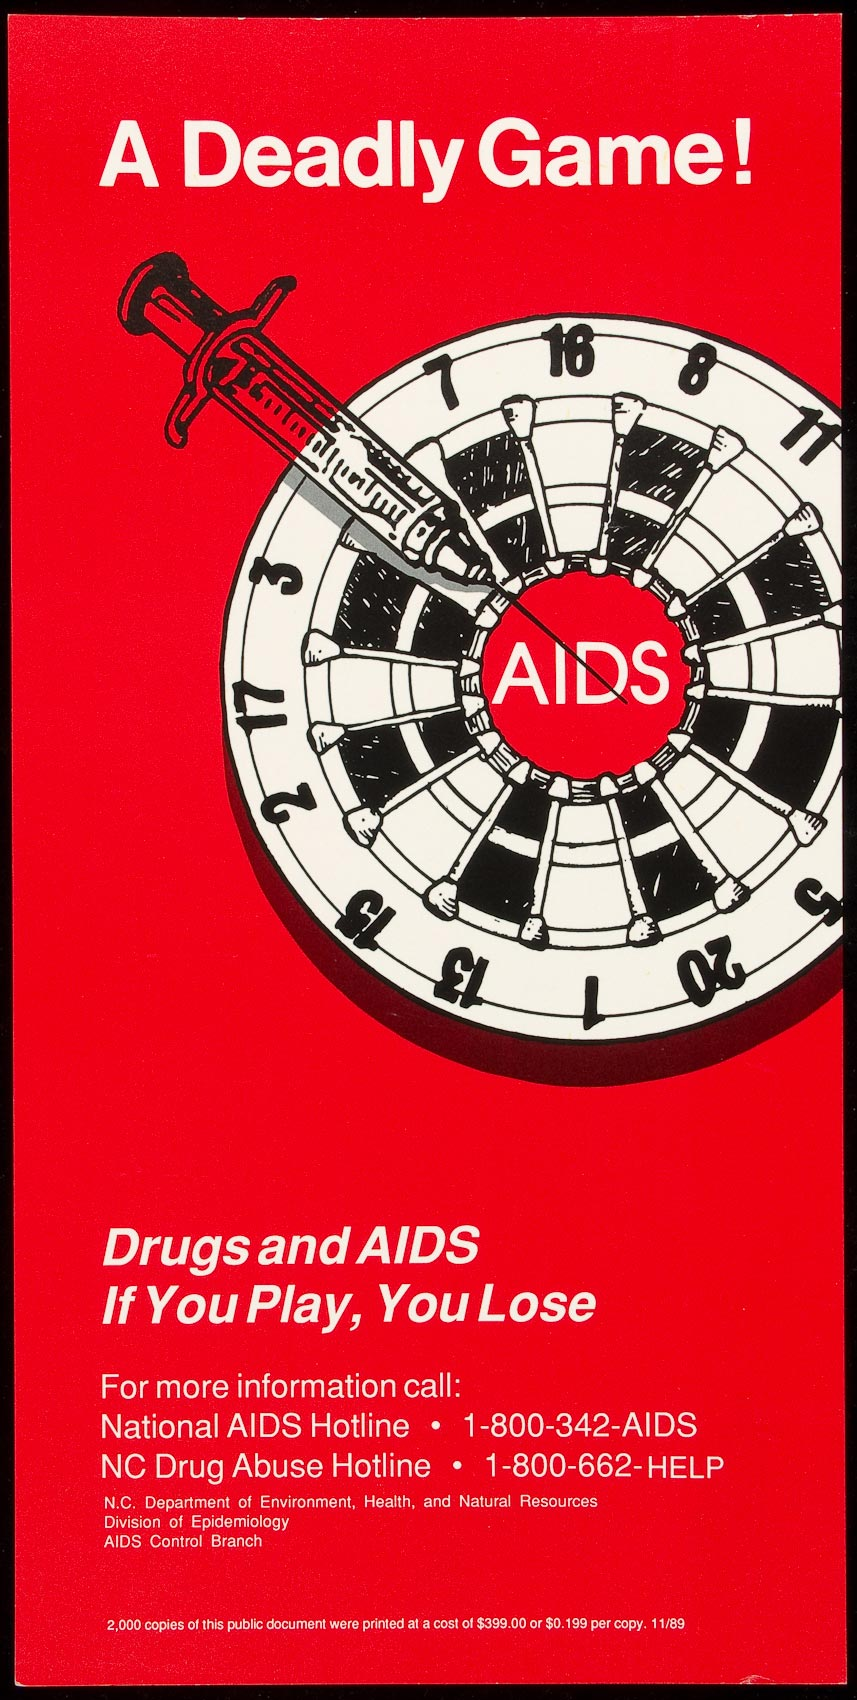 AIDS poster shows dart board with text A DEADLY GAME